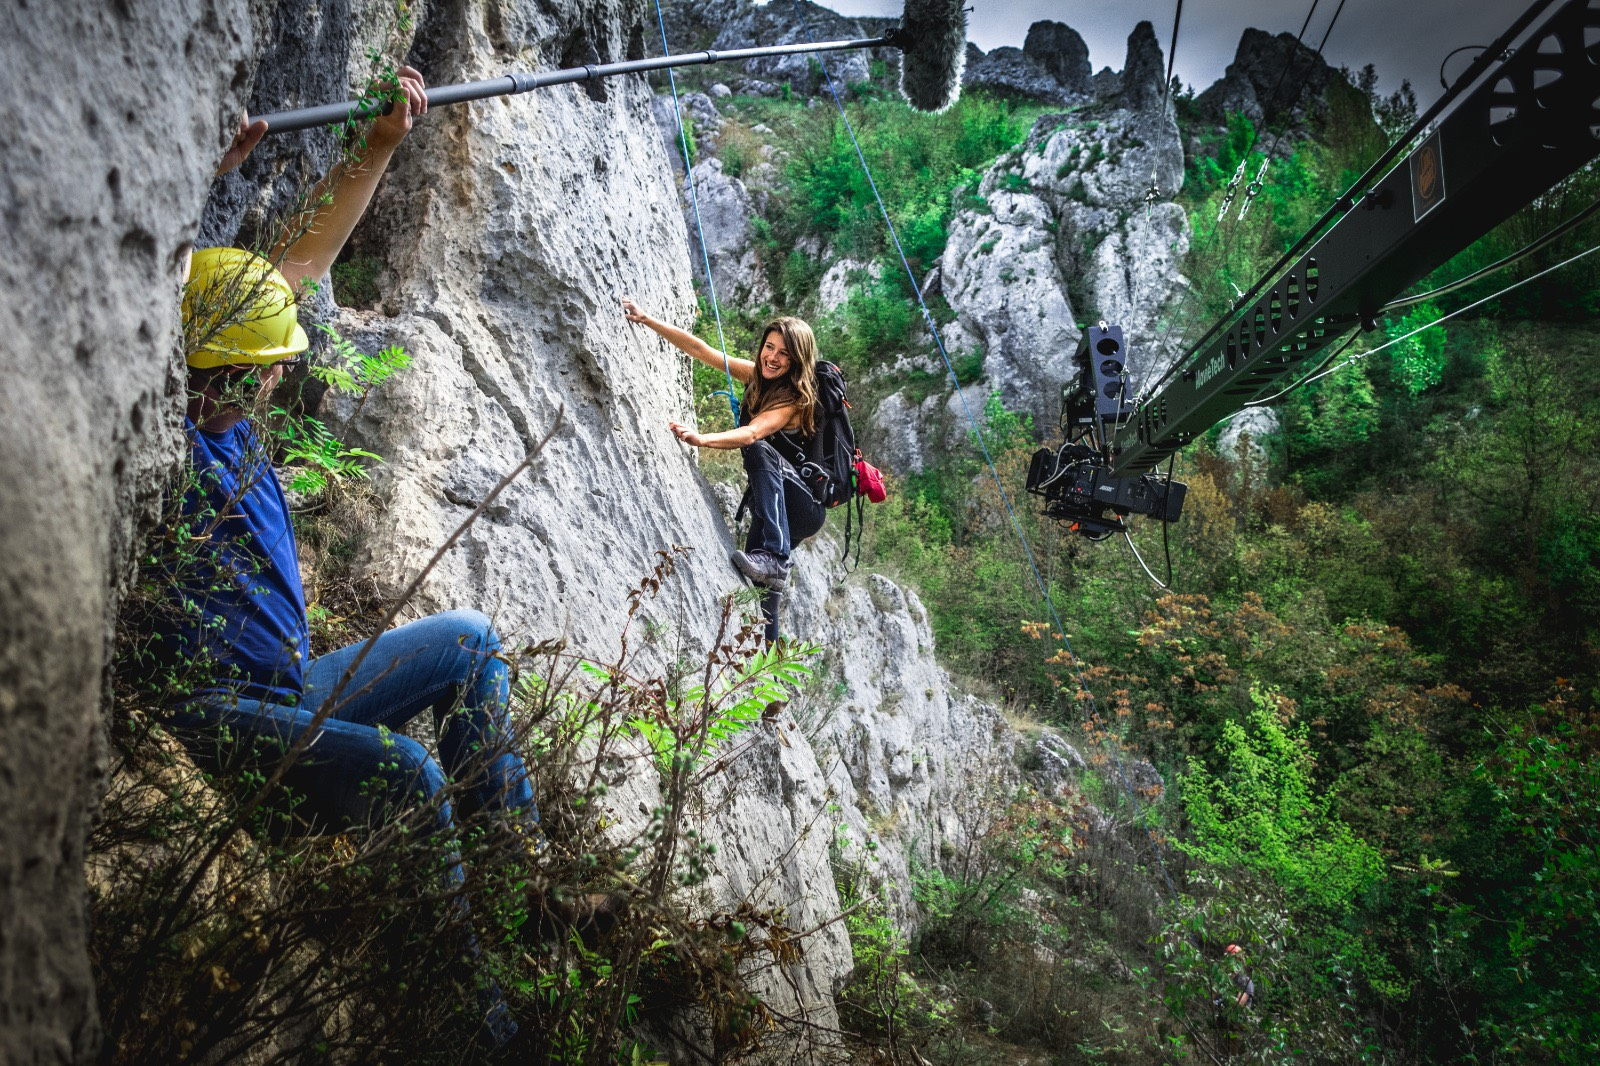 THRILLER THE LEDGE DISCOVERS NEW FILM LOCATIONS IN SERBIA